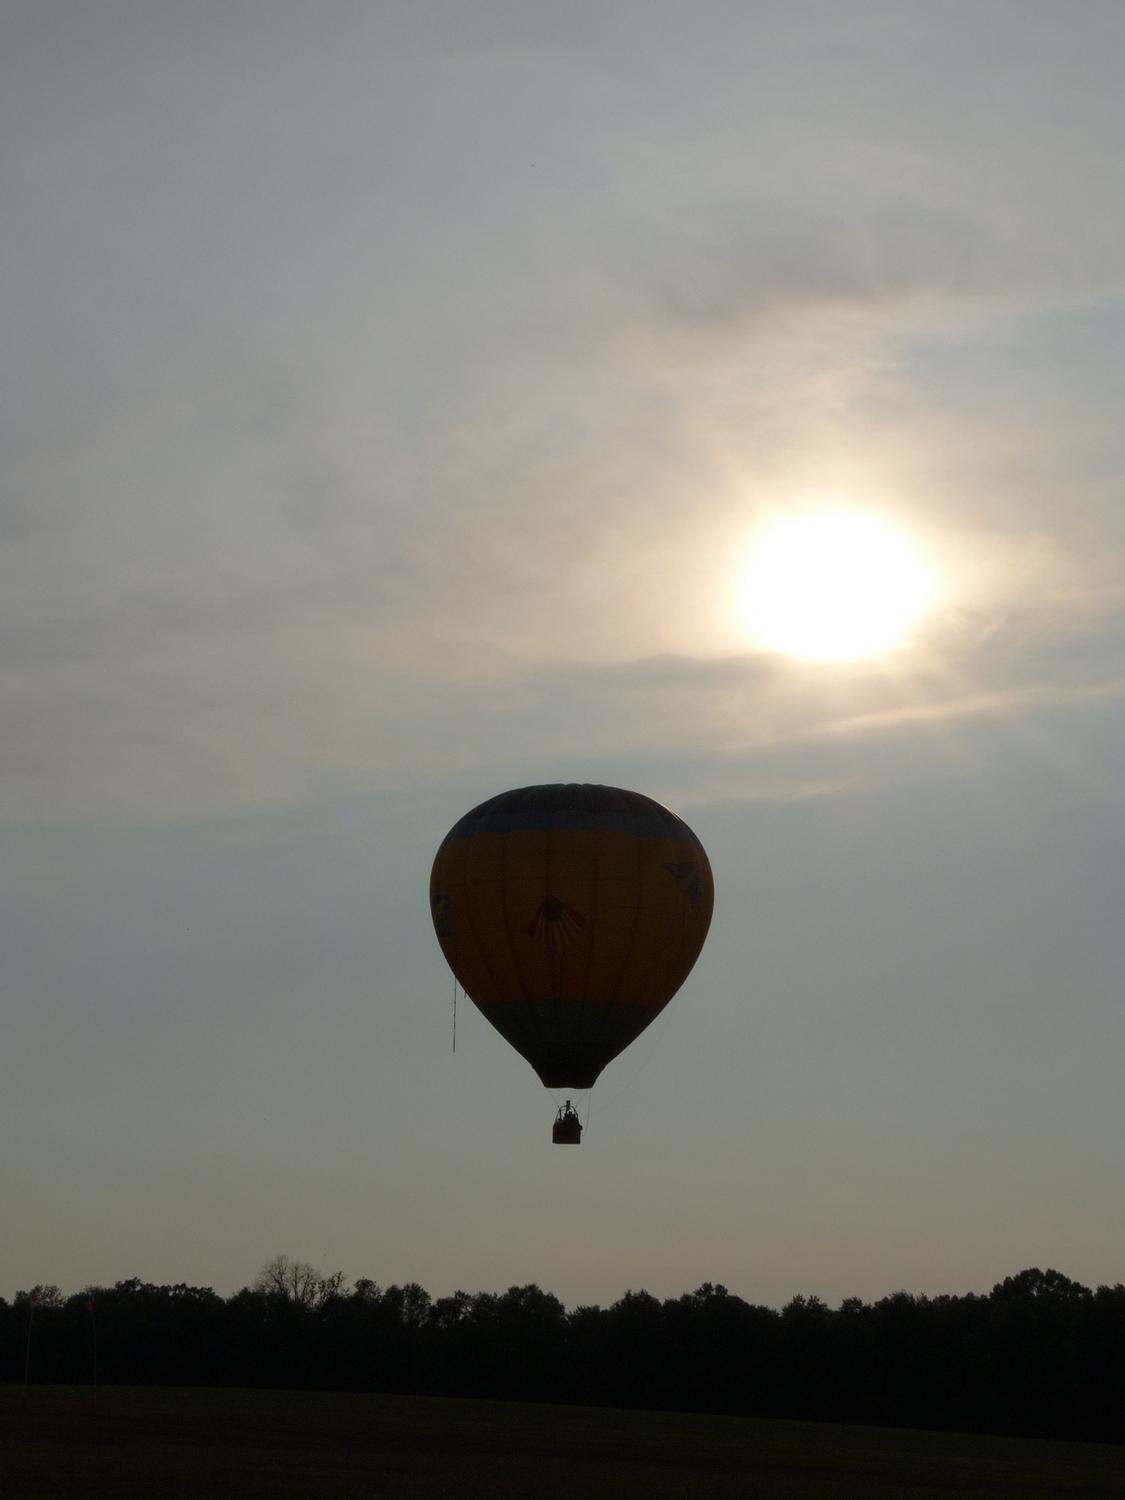 hot air balloon taking off into the sun - Taking off into the sun. - Panasonic DMC-FZ28 -- At the Flying Circus - Bealton Virginia - Tony Karp, design, art, photography, techno-impressionist, techno-impressionism, aerial photography , drone , drones , dji , mavic pro , video , 3D printing - Books -